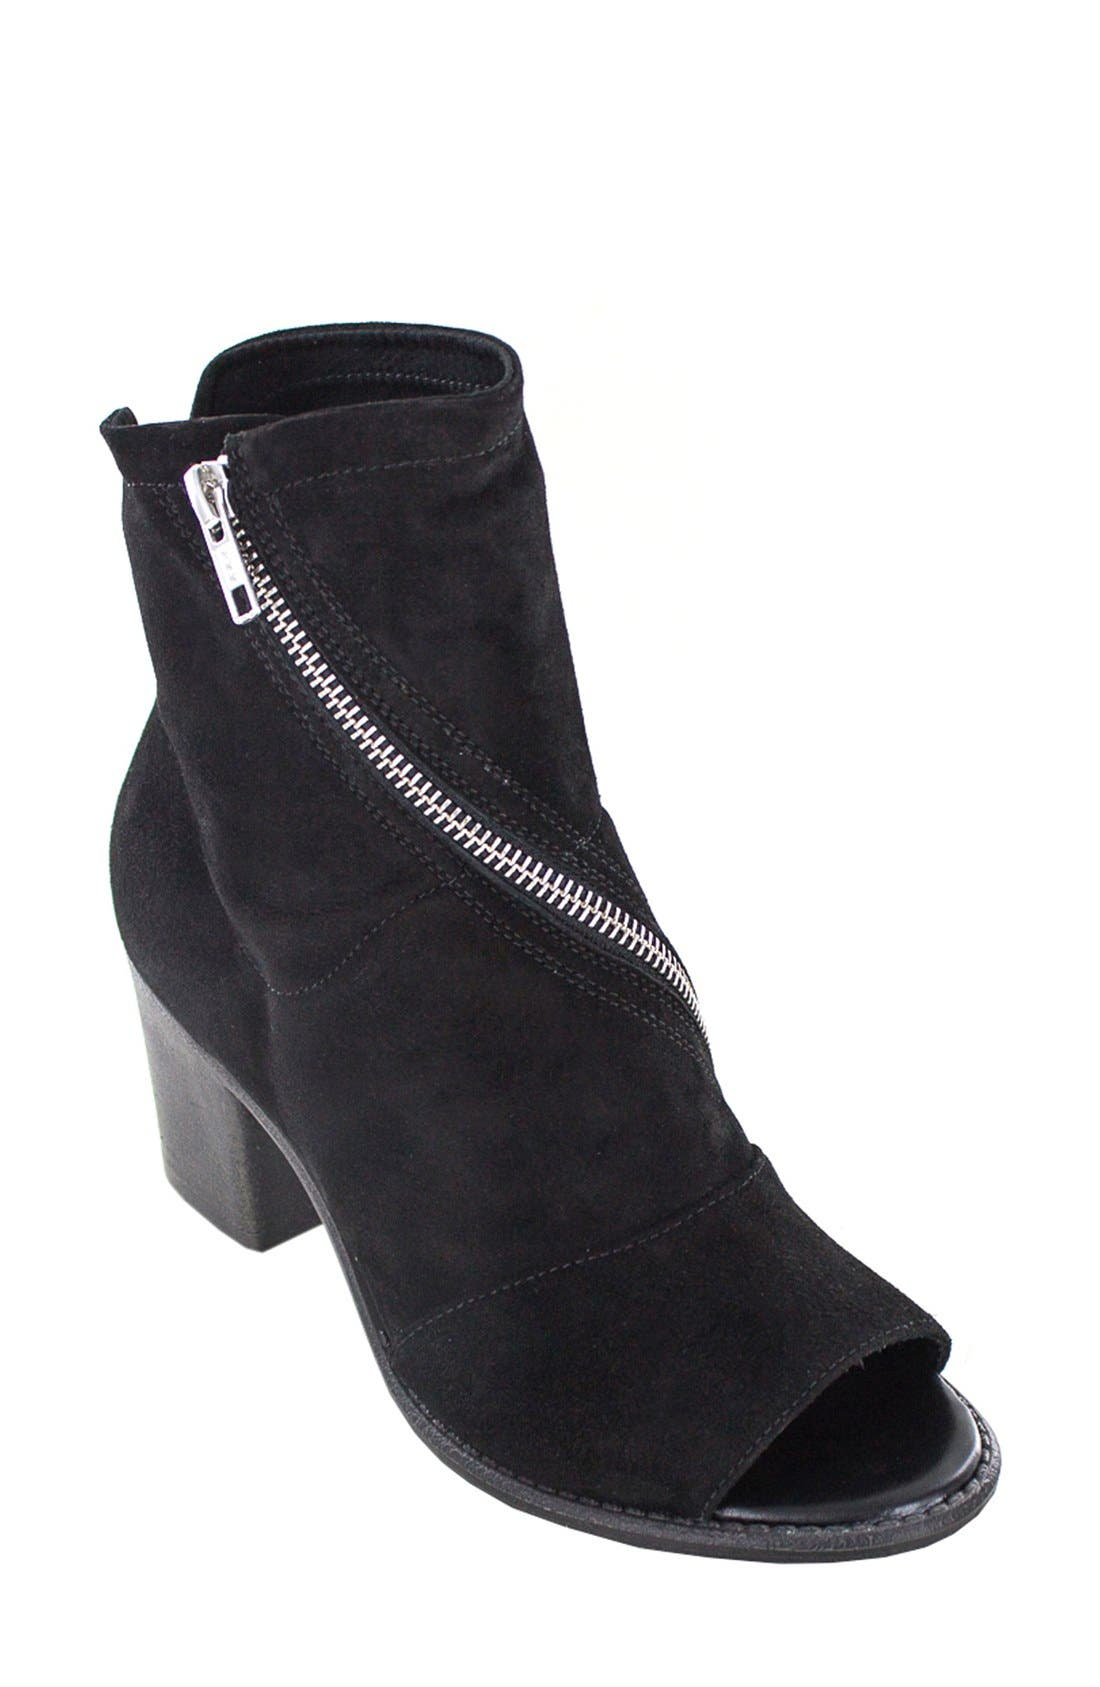 Main Image - Summit 'Fantasia' Open Toe Bootie (Women)